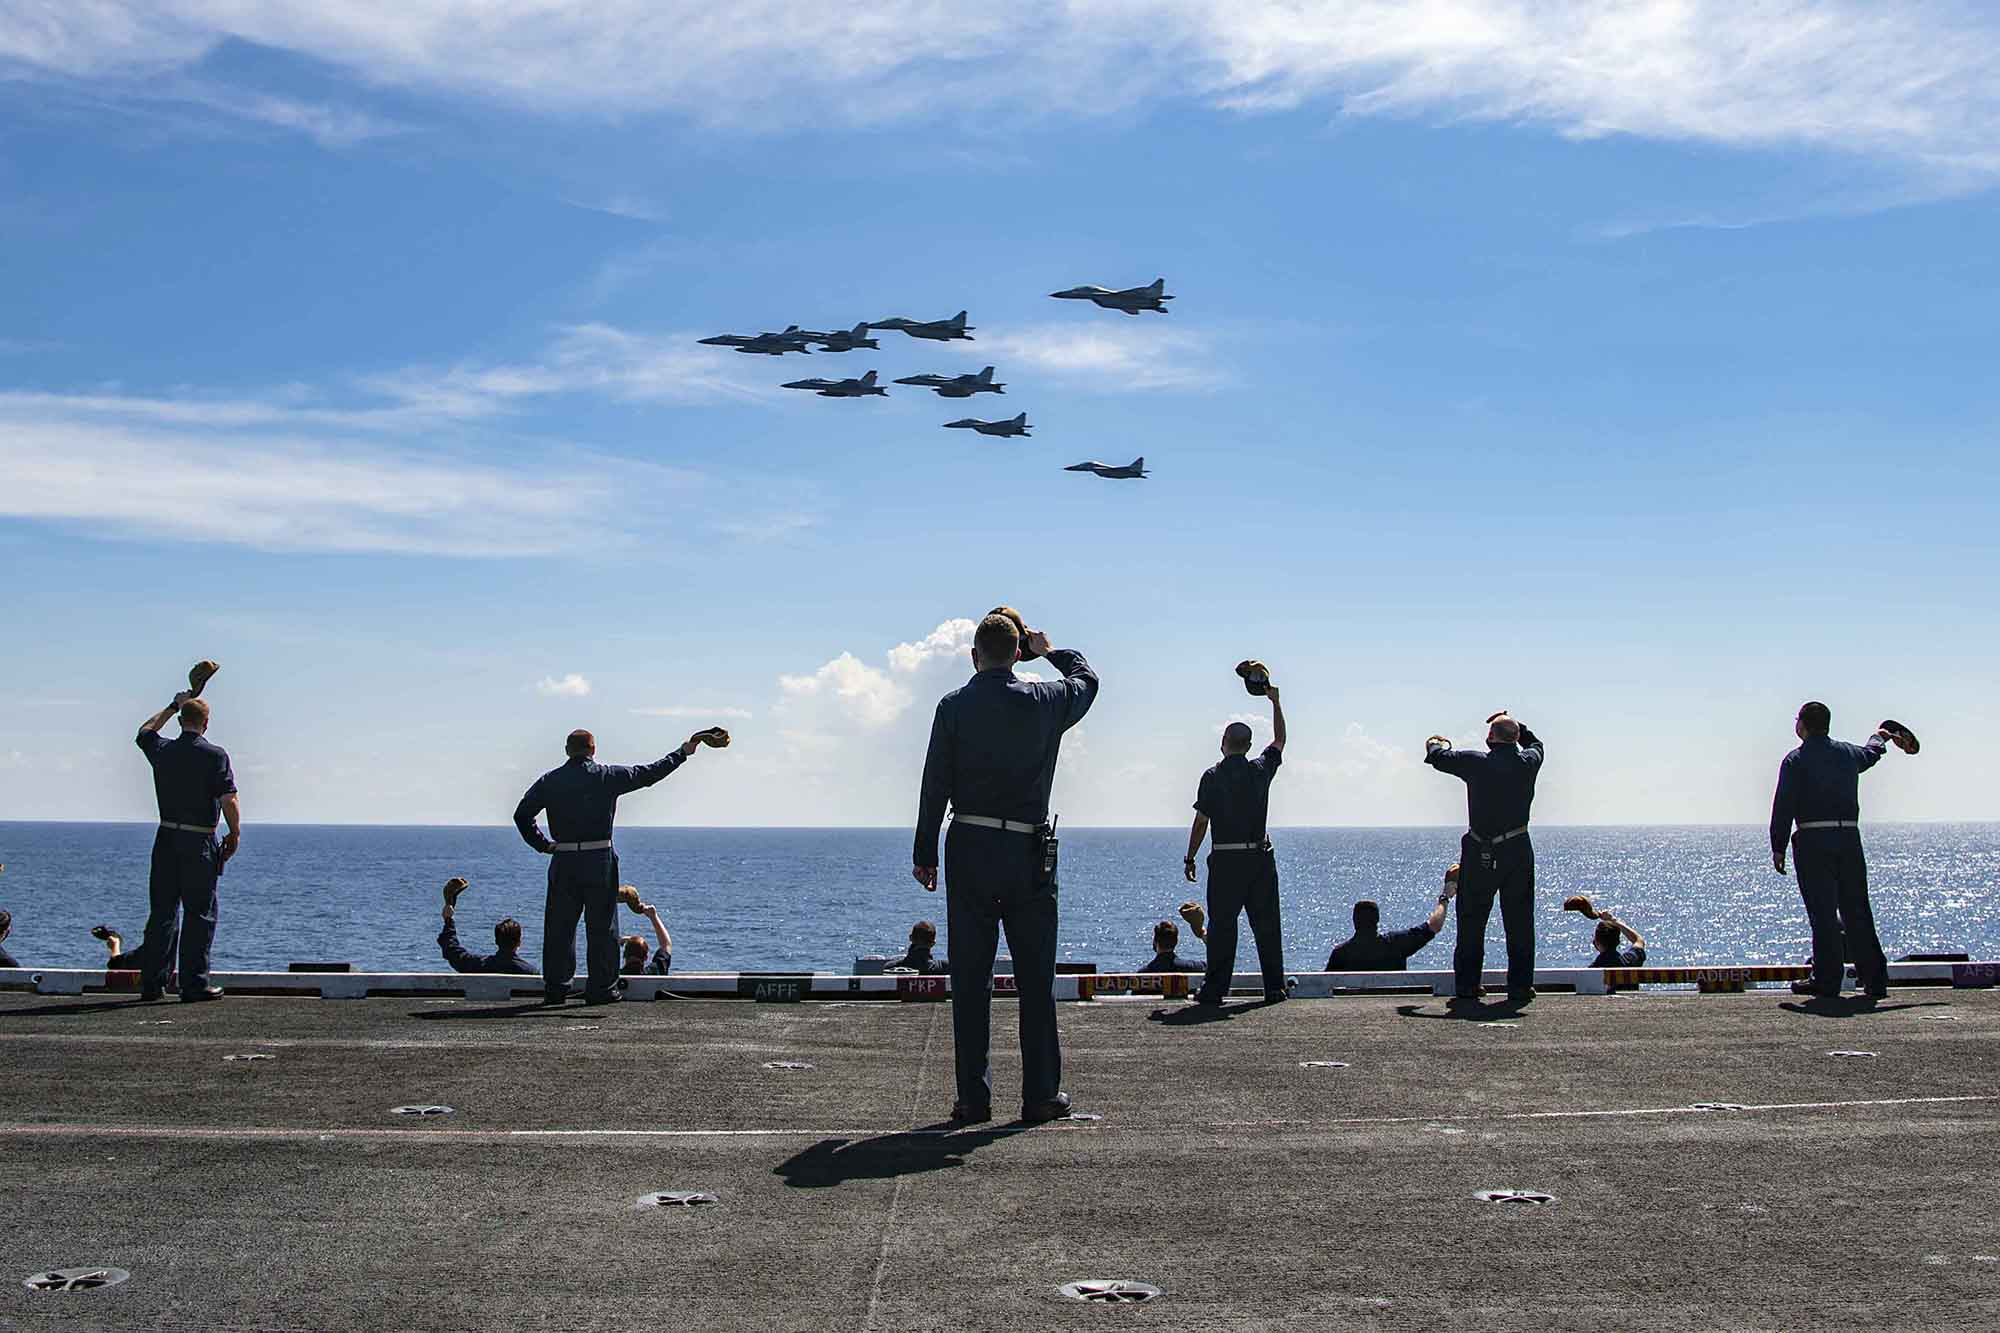 Master Chief David Conduff, command master chief of the aircraft carrier USS Nimitz (CVN 68), waves to four F-18s from the Nimitz and four MiG 29K Fulcrum K from the Indian navy aircraft carrier INS Vikramaditya (R 33) on Nov. 20, 2020, from the flight deck of the Nimitz while participating in Malabar 2020 in the Indian Ocean. (MC3 Charles DeParlier/Navy)